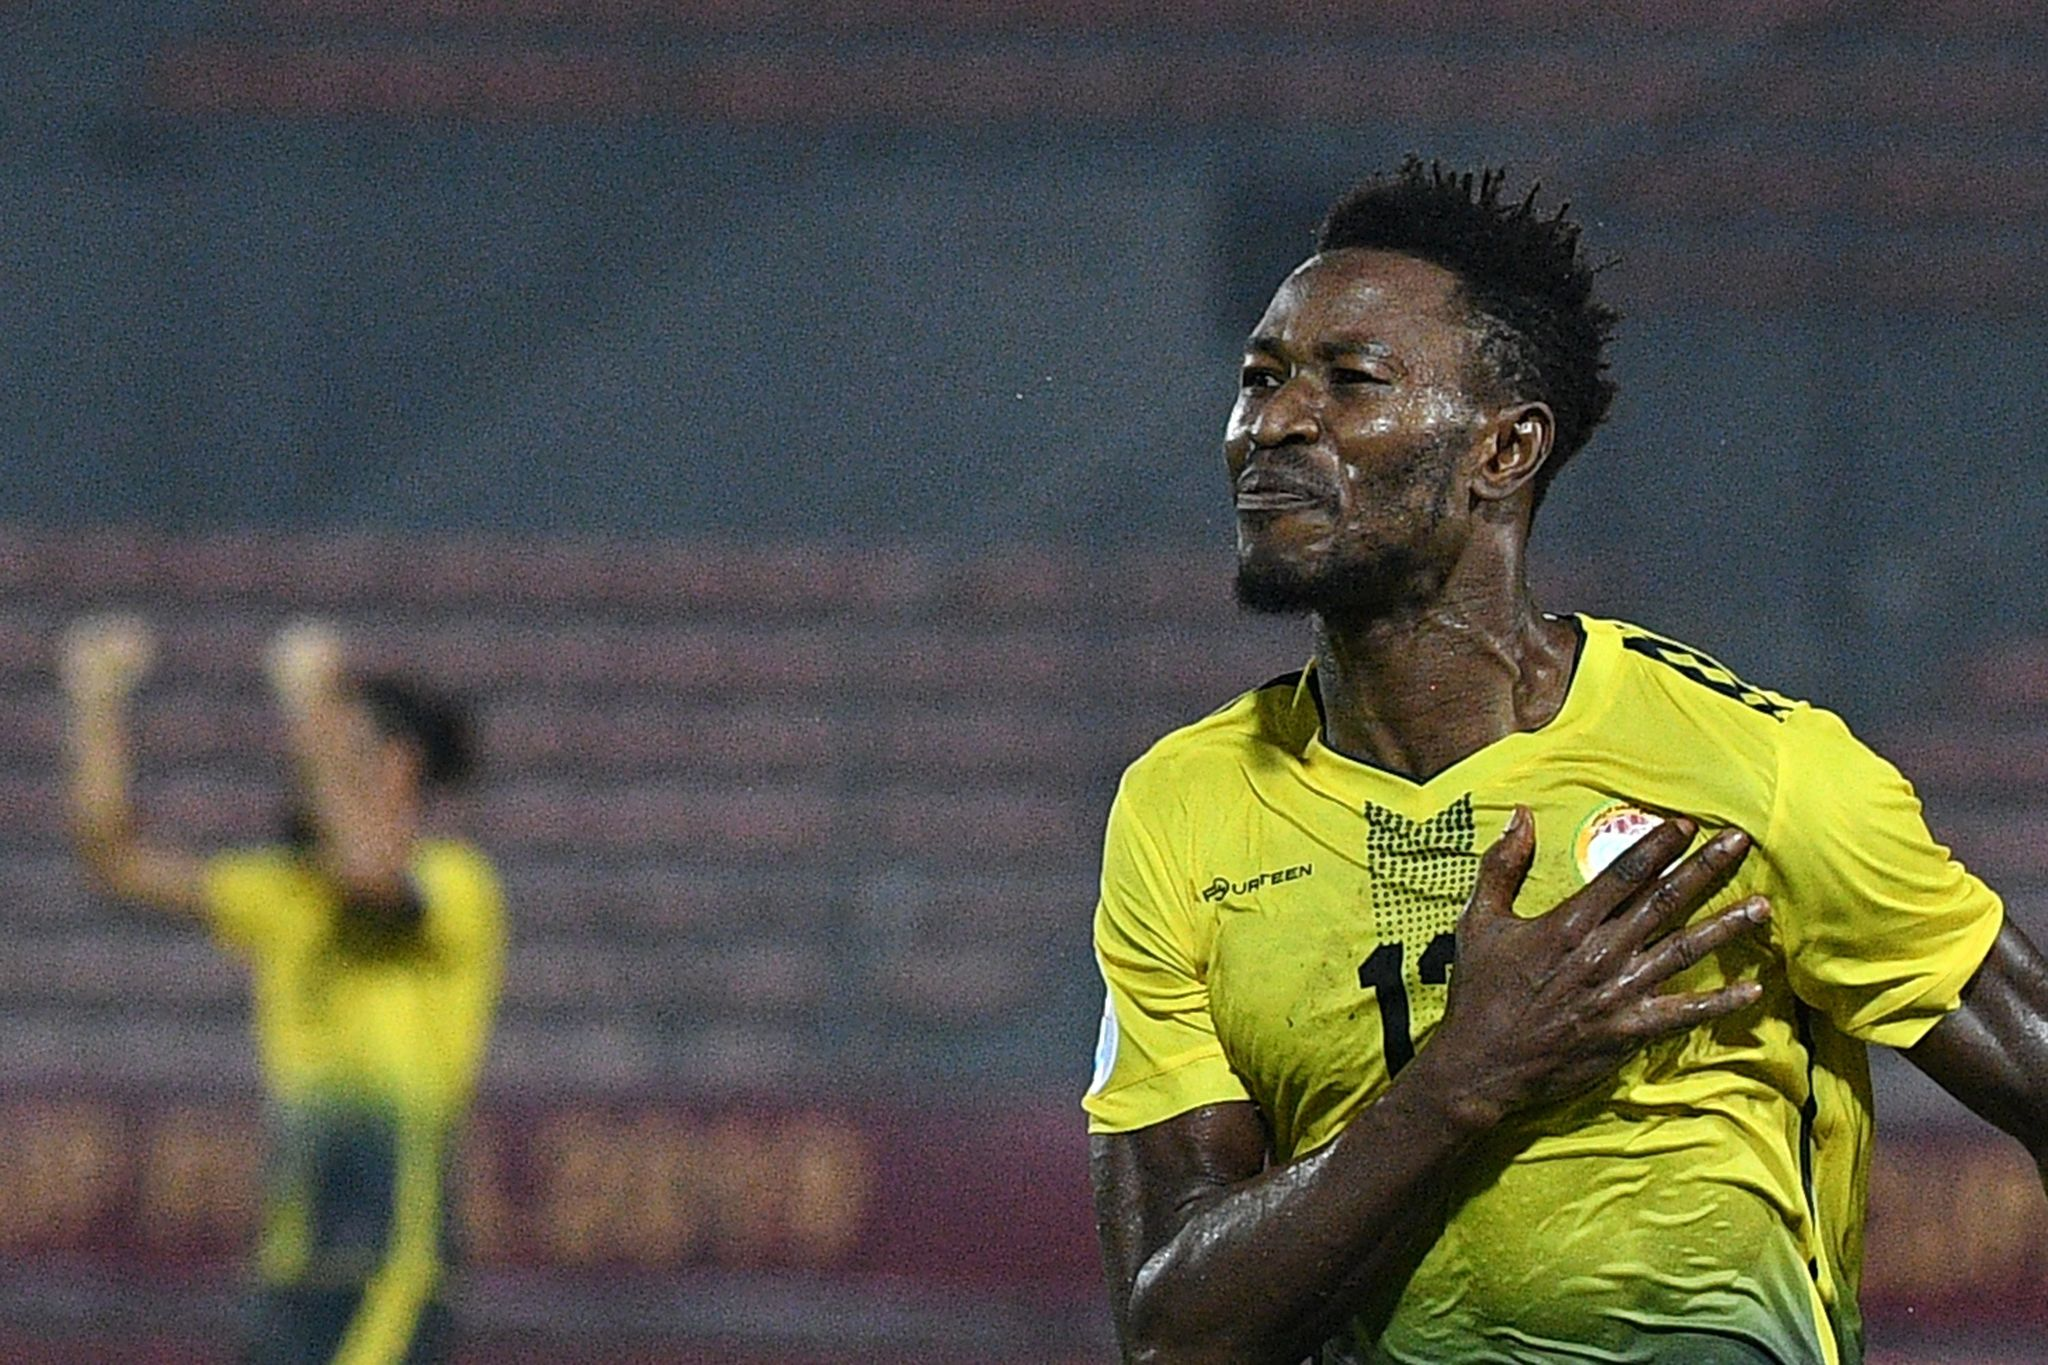 Al <HIT>Ahed</HIT>s midfielder Issah Yakubu celebrates after scoring a goal during the 2019 AFC Cup Final between North Koreas April 25 Sports Club and Lebanons Al <HIT>Ahed</HIT> FC at Kuala Lumpur Stadium in Kuala Lumpur on November 4, 2019. (Photo by Mohd RASFAN / AFP)